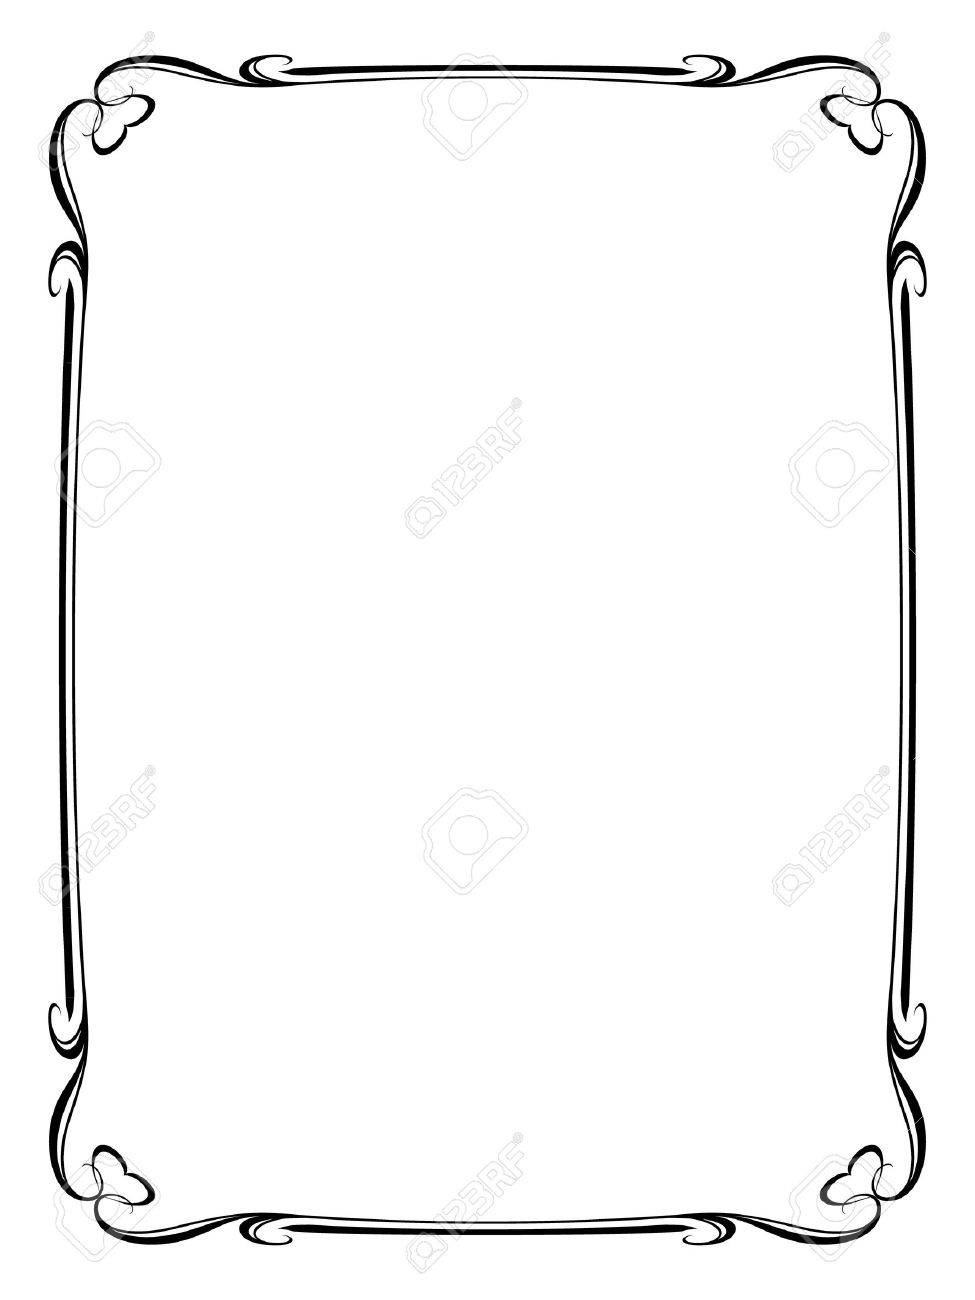 Vector calligraphy ornamental decorative frame with heart - 11655516